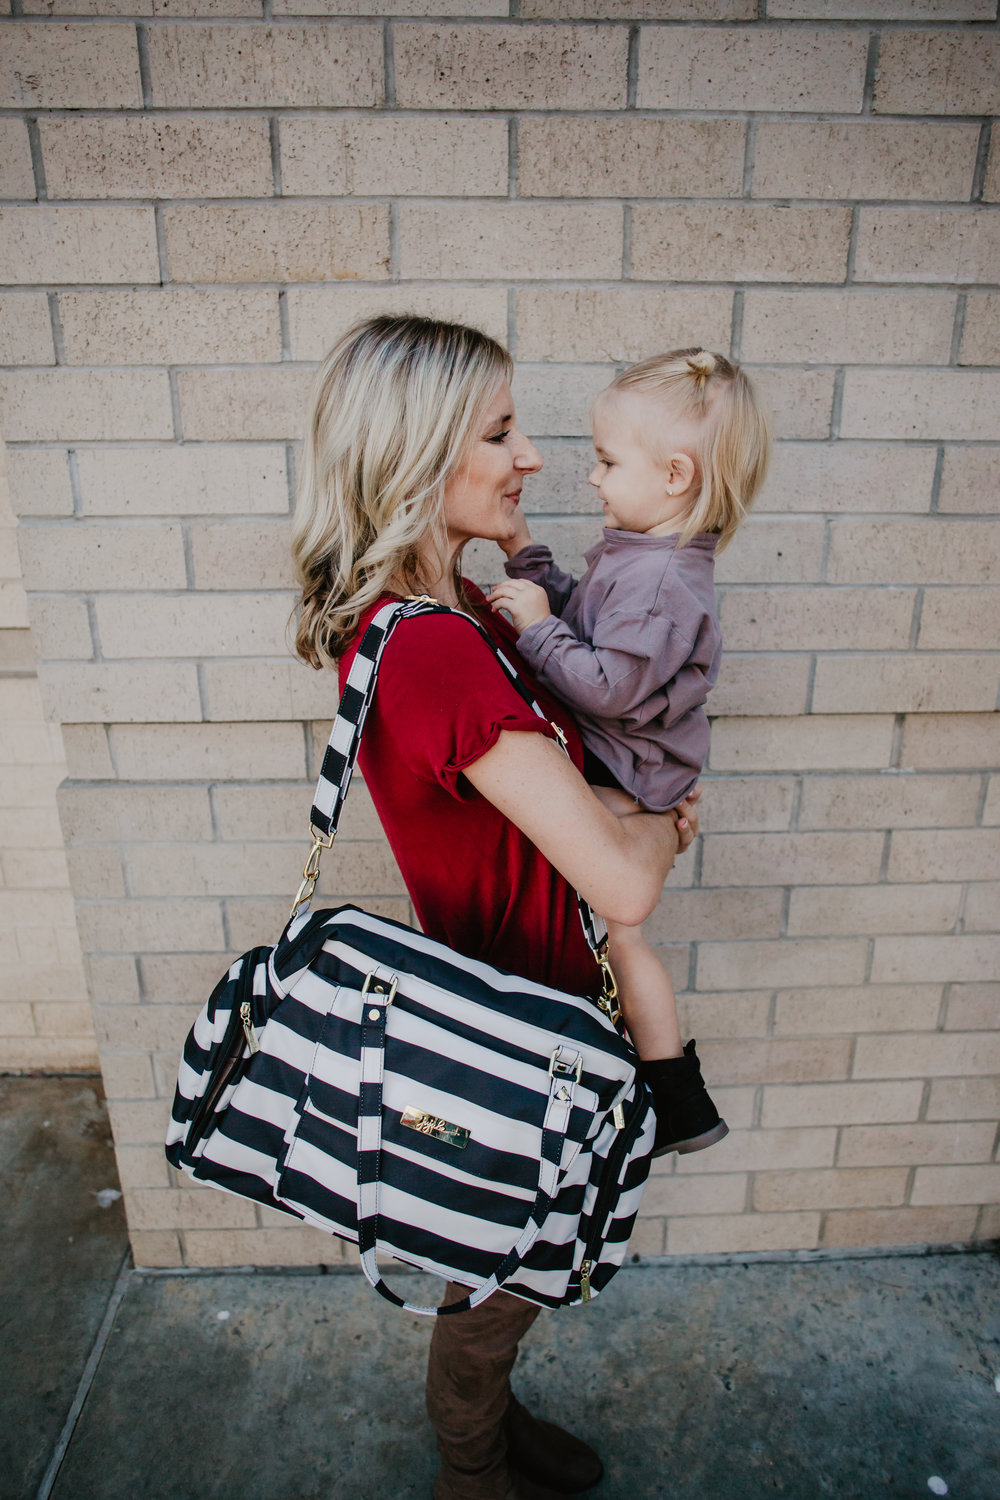 Ju-Ju-Be Breast Pump Bags - Ju-Ju-Be Be Pumped -- Mommy Blogger-Vlogger - The Overwhelmed Mommy